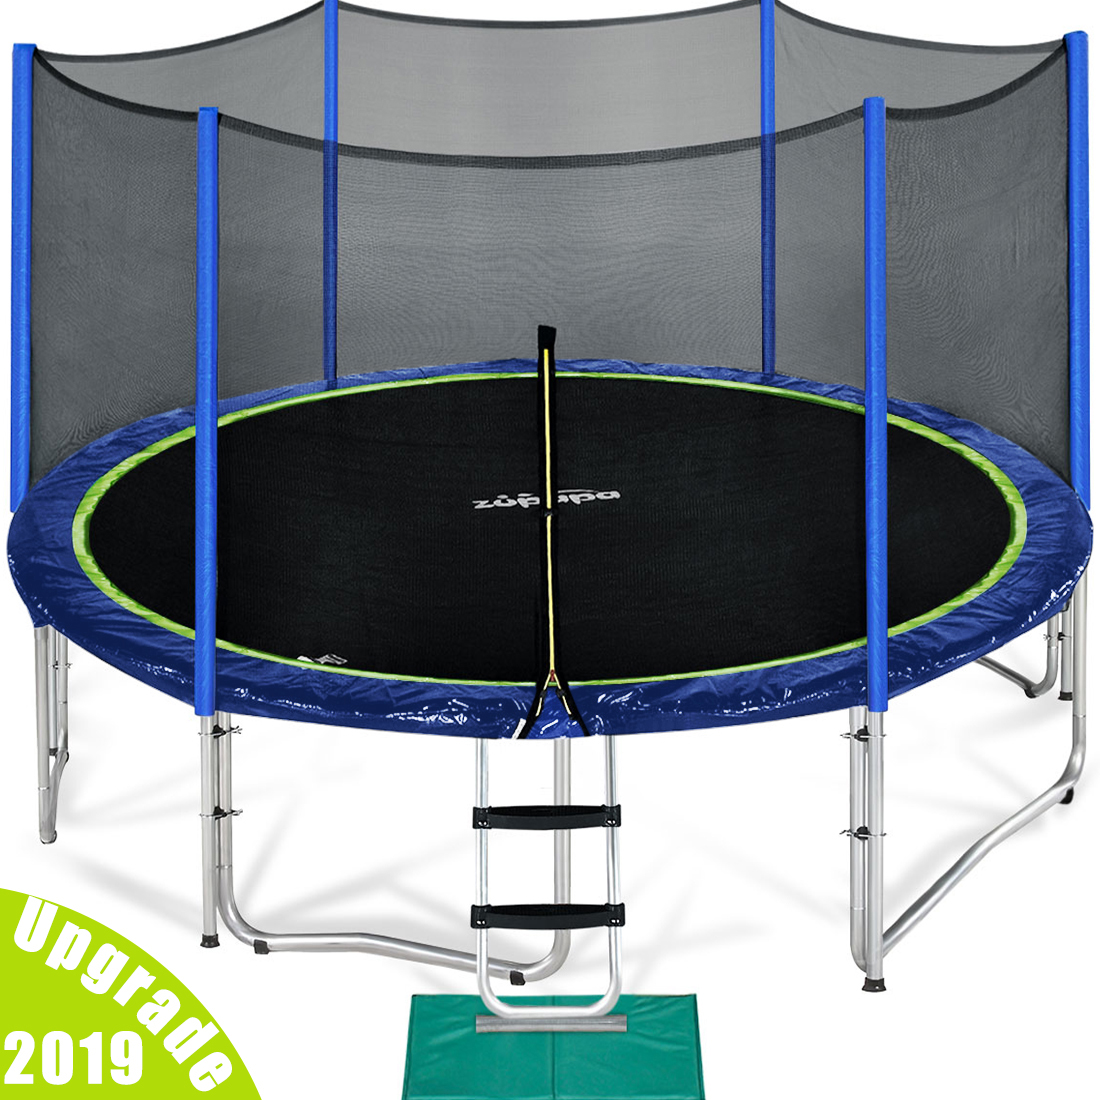 Zupapa 2019 Upgraded 15FT Trampoline with enclousre net ladder assembly tools, TUV Certified